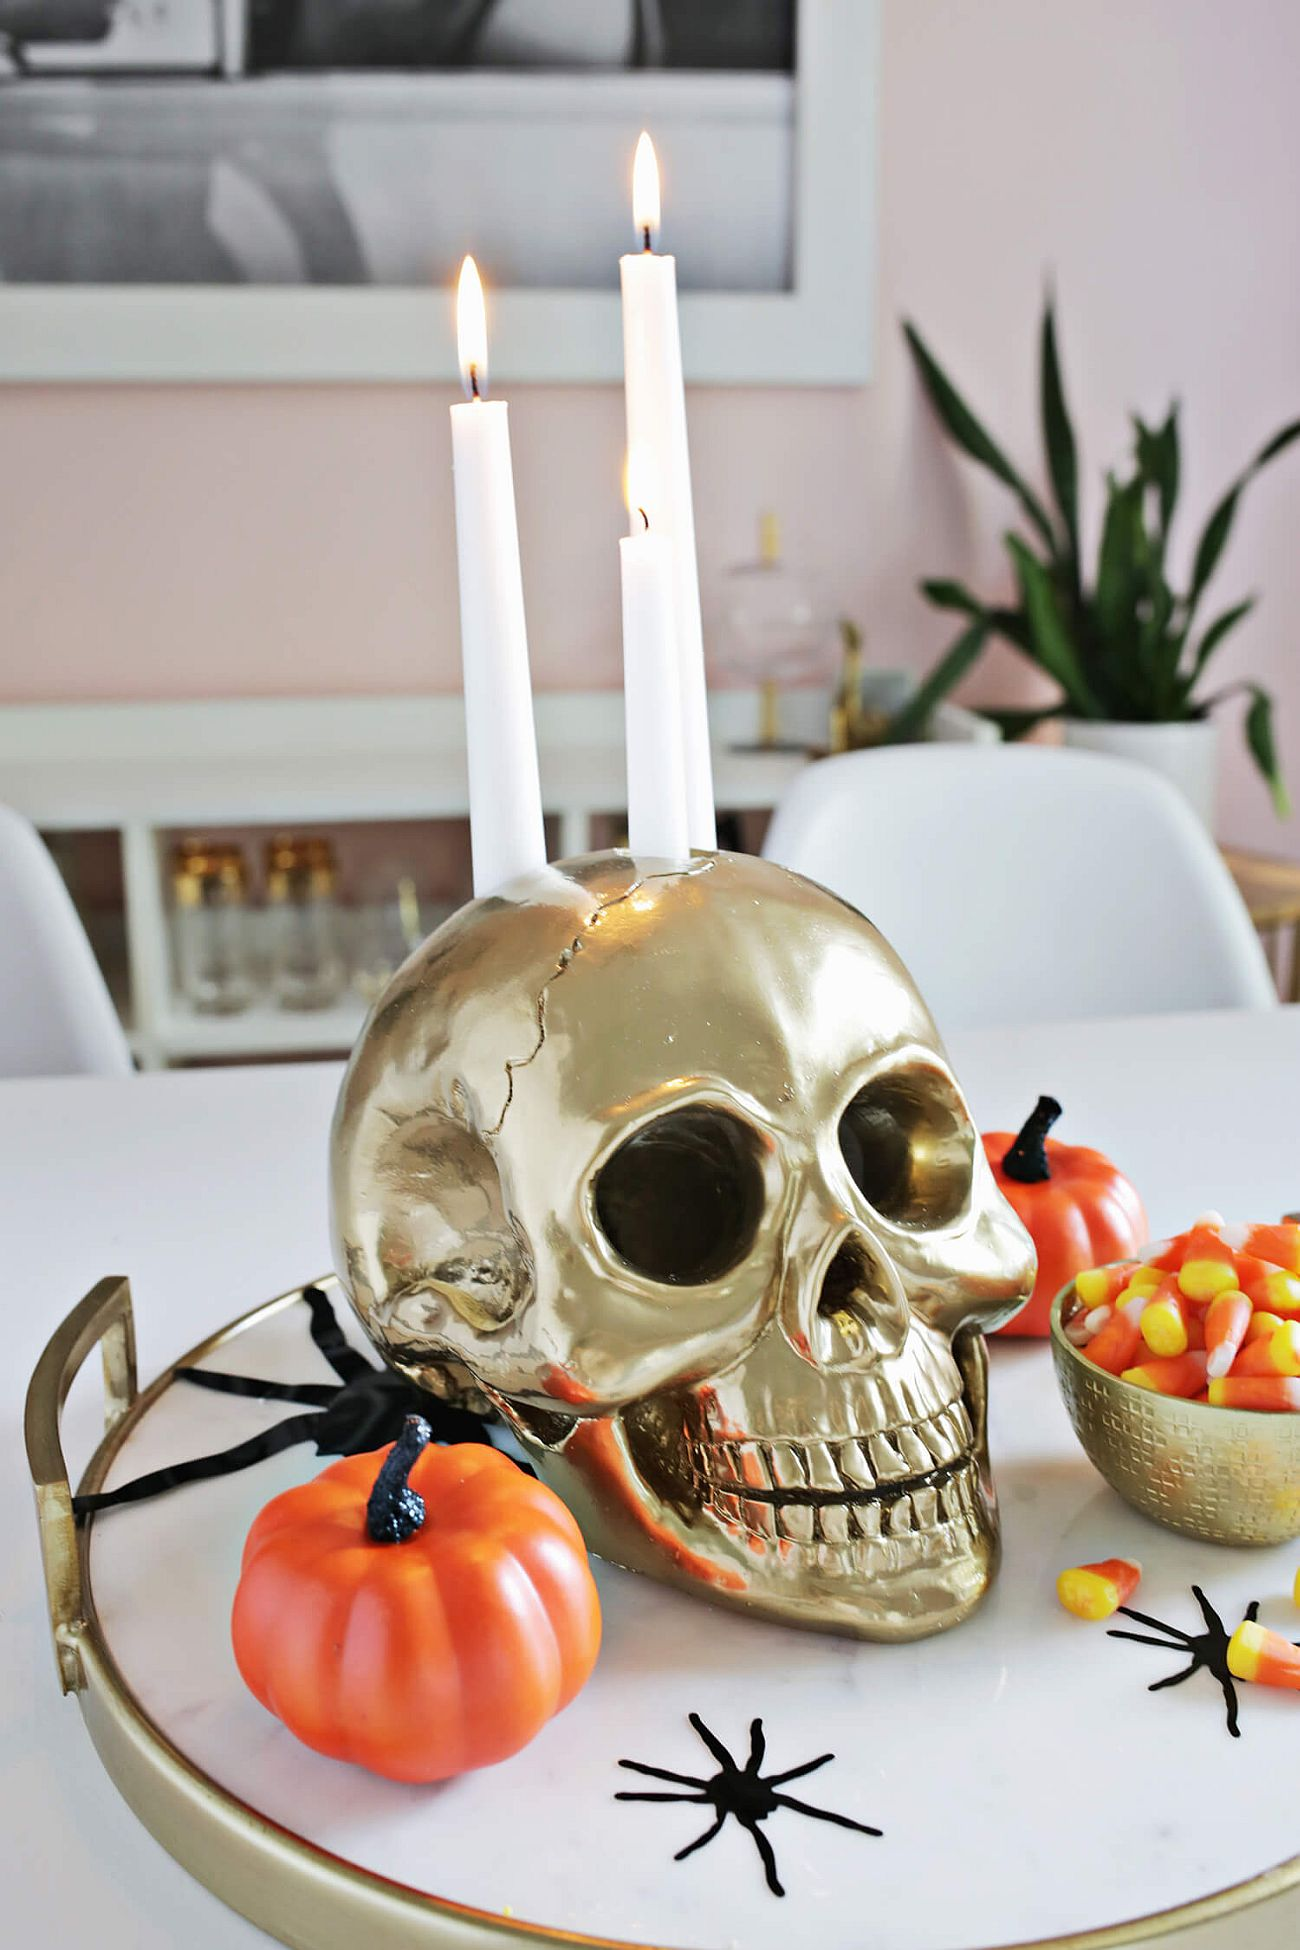 A Halloween table centerpiece that your guests can't stop talking about